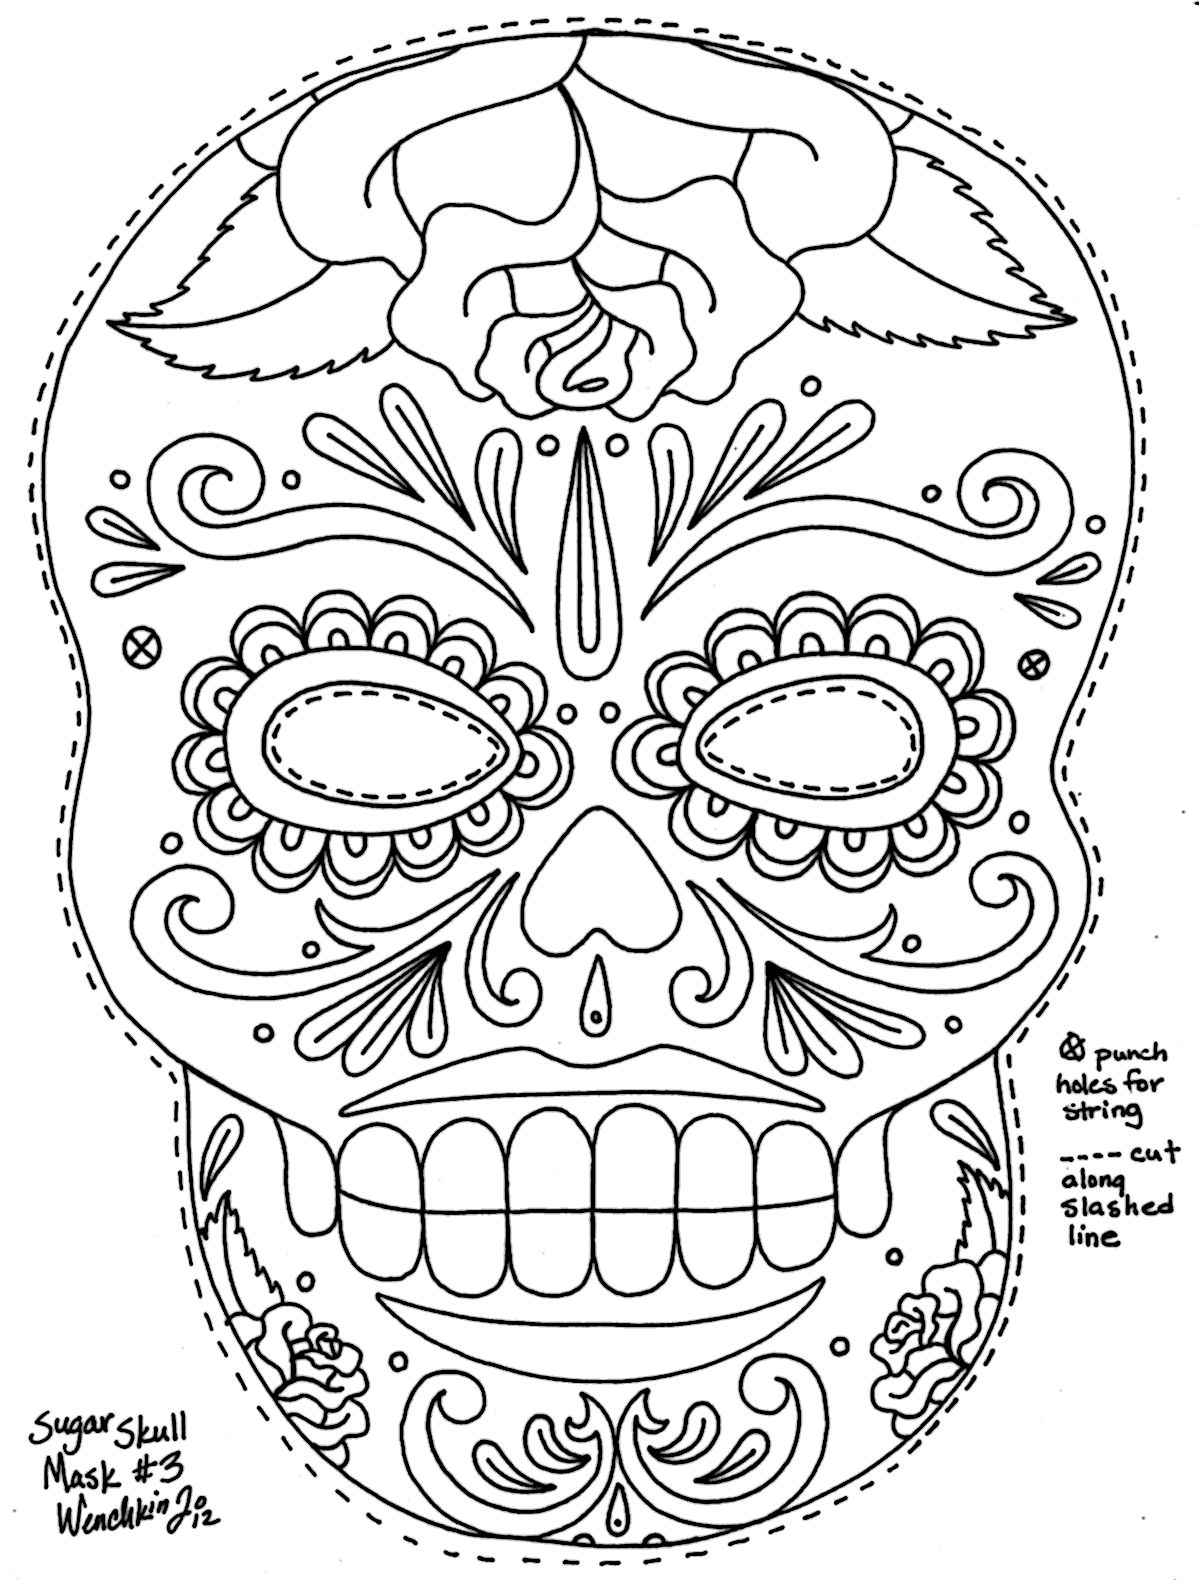 yucca flats, n.m.: wenchkin's coloring pages - sugar skull mask ... - Coloring Pages Roses Skulls